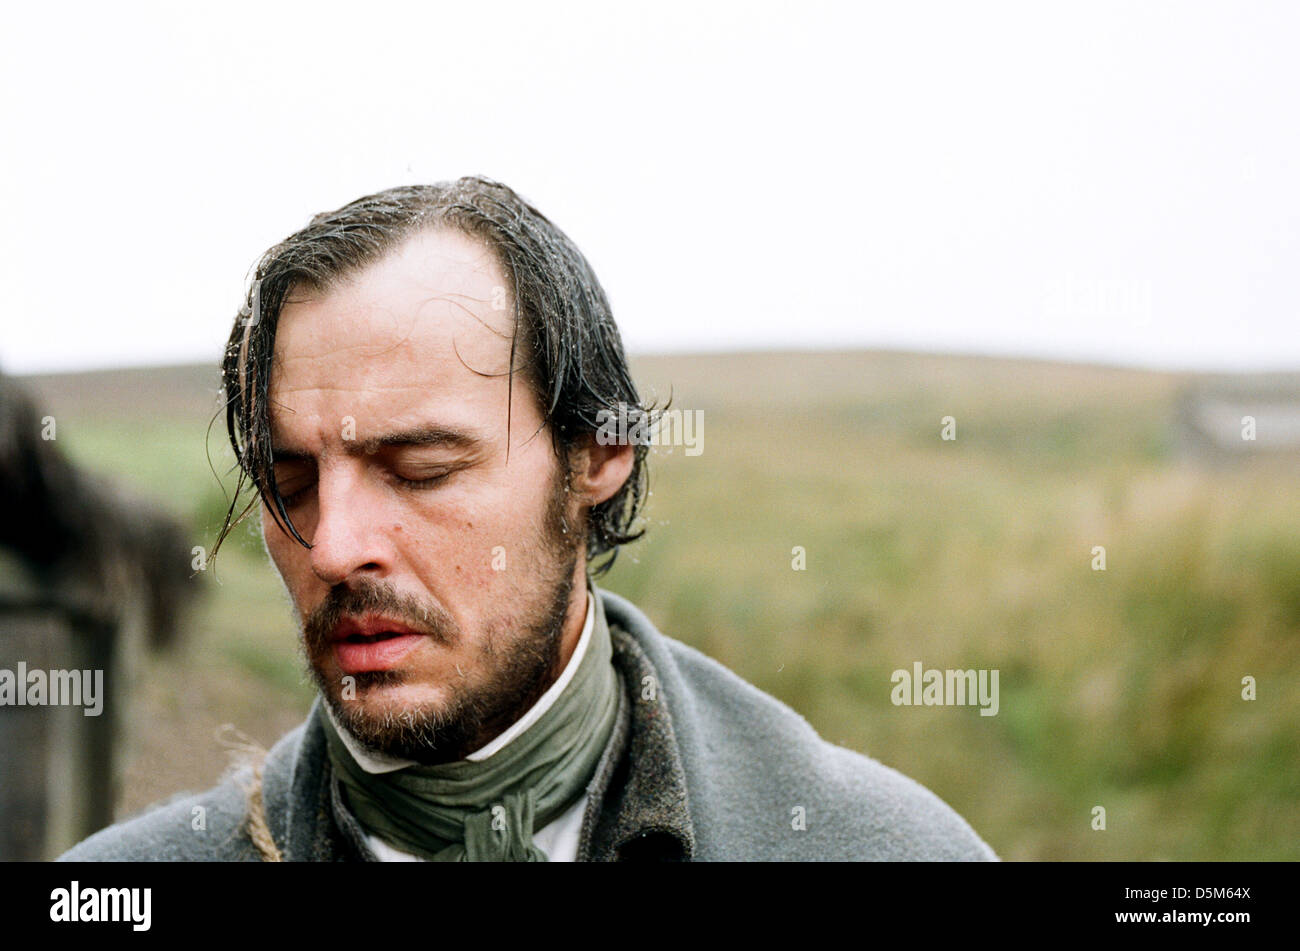 wuthering heights stock photos wuthering heights stock images lee shaw wuthering heights 2011 stock image